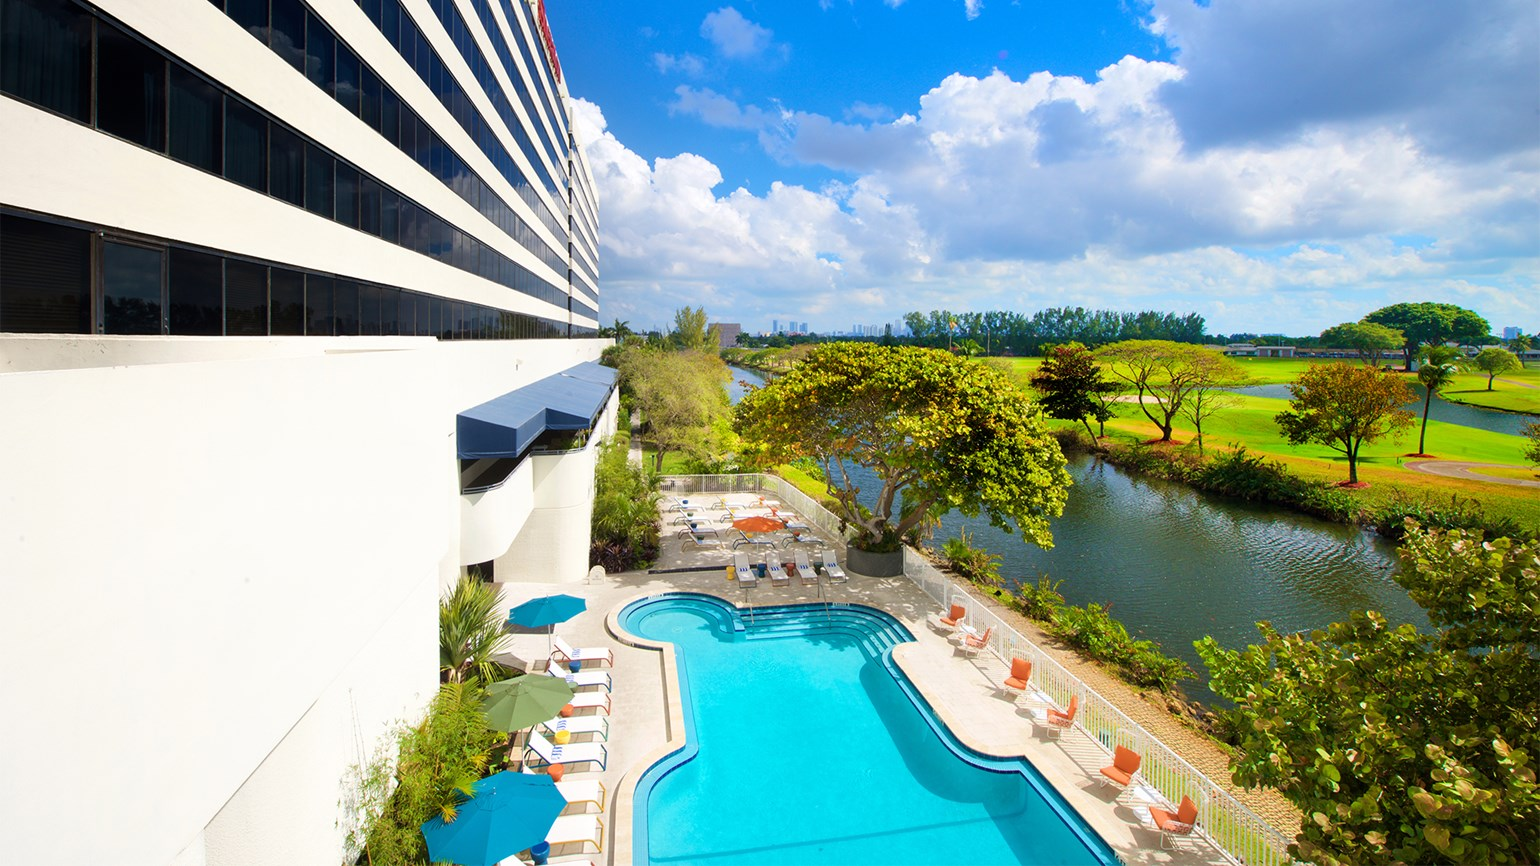 Sheraton Miami Airport completes renovation